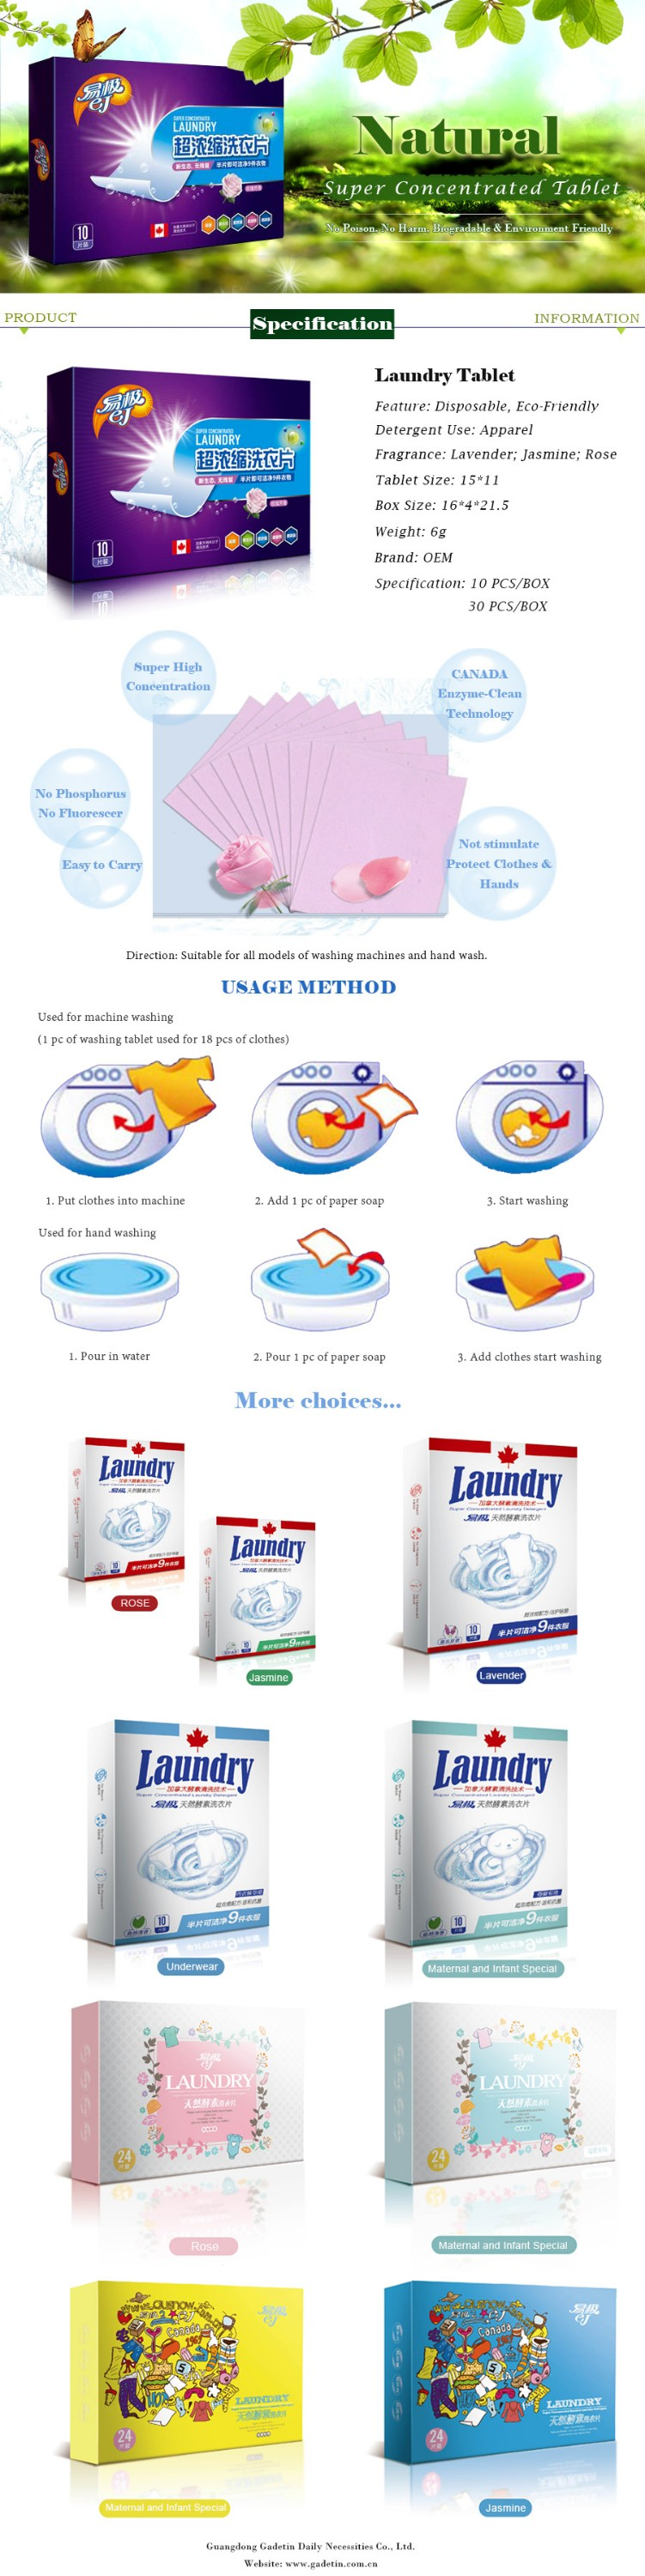 Laundry Tablets -- GADETIN.jpg